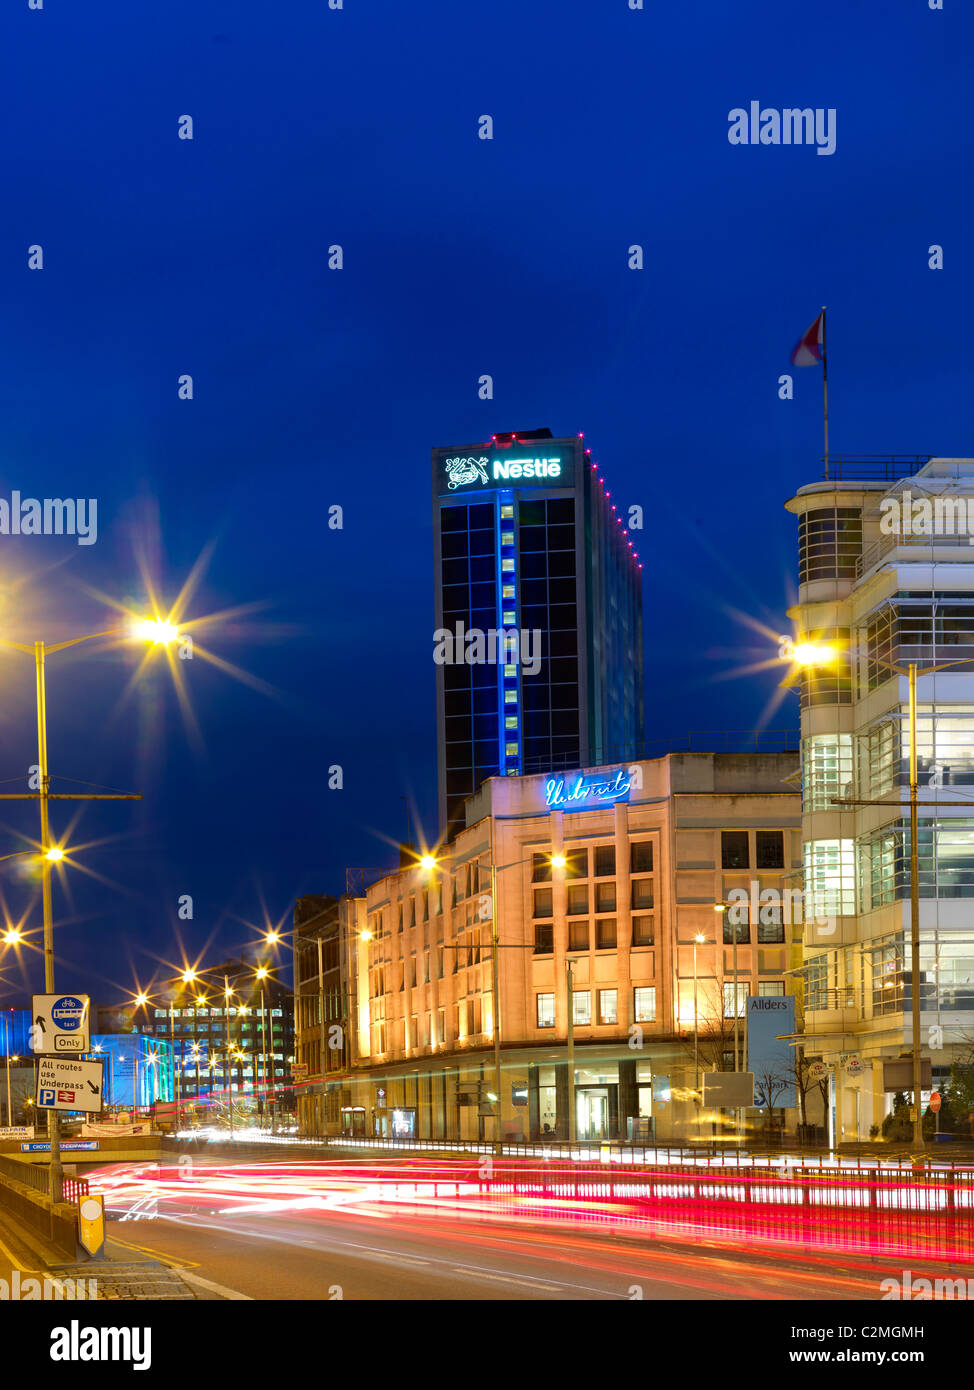 General views of City Centre, Croydon - Stock Image